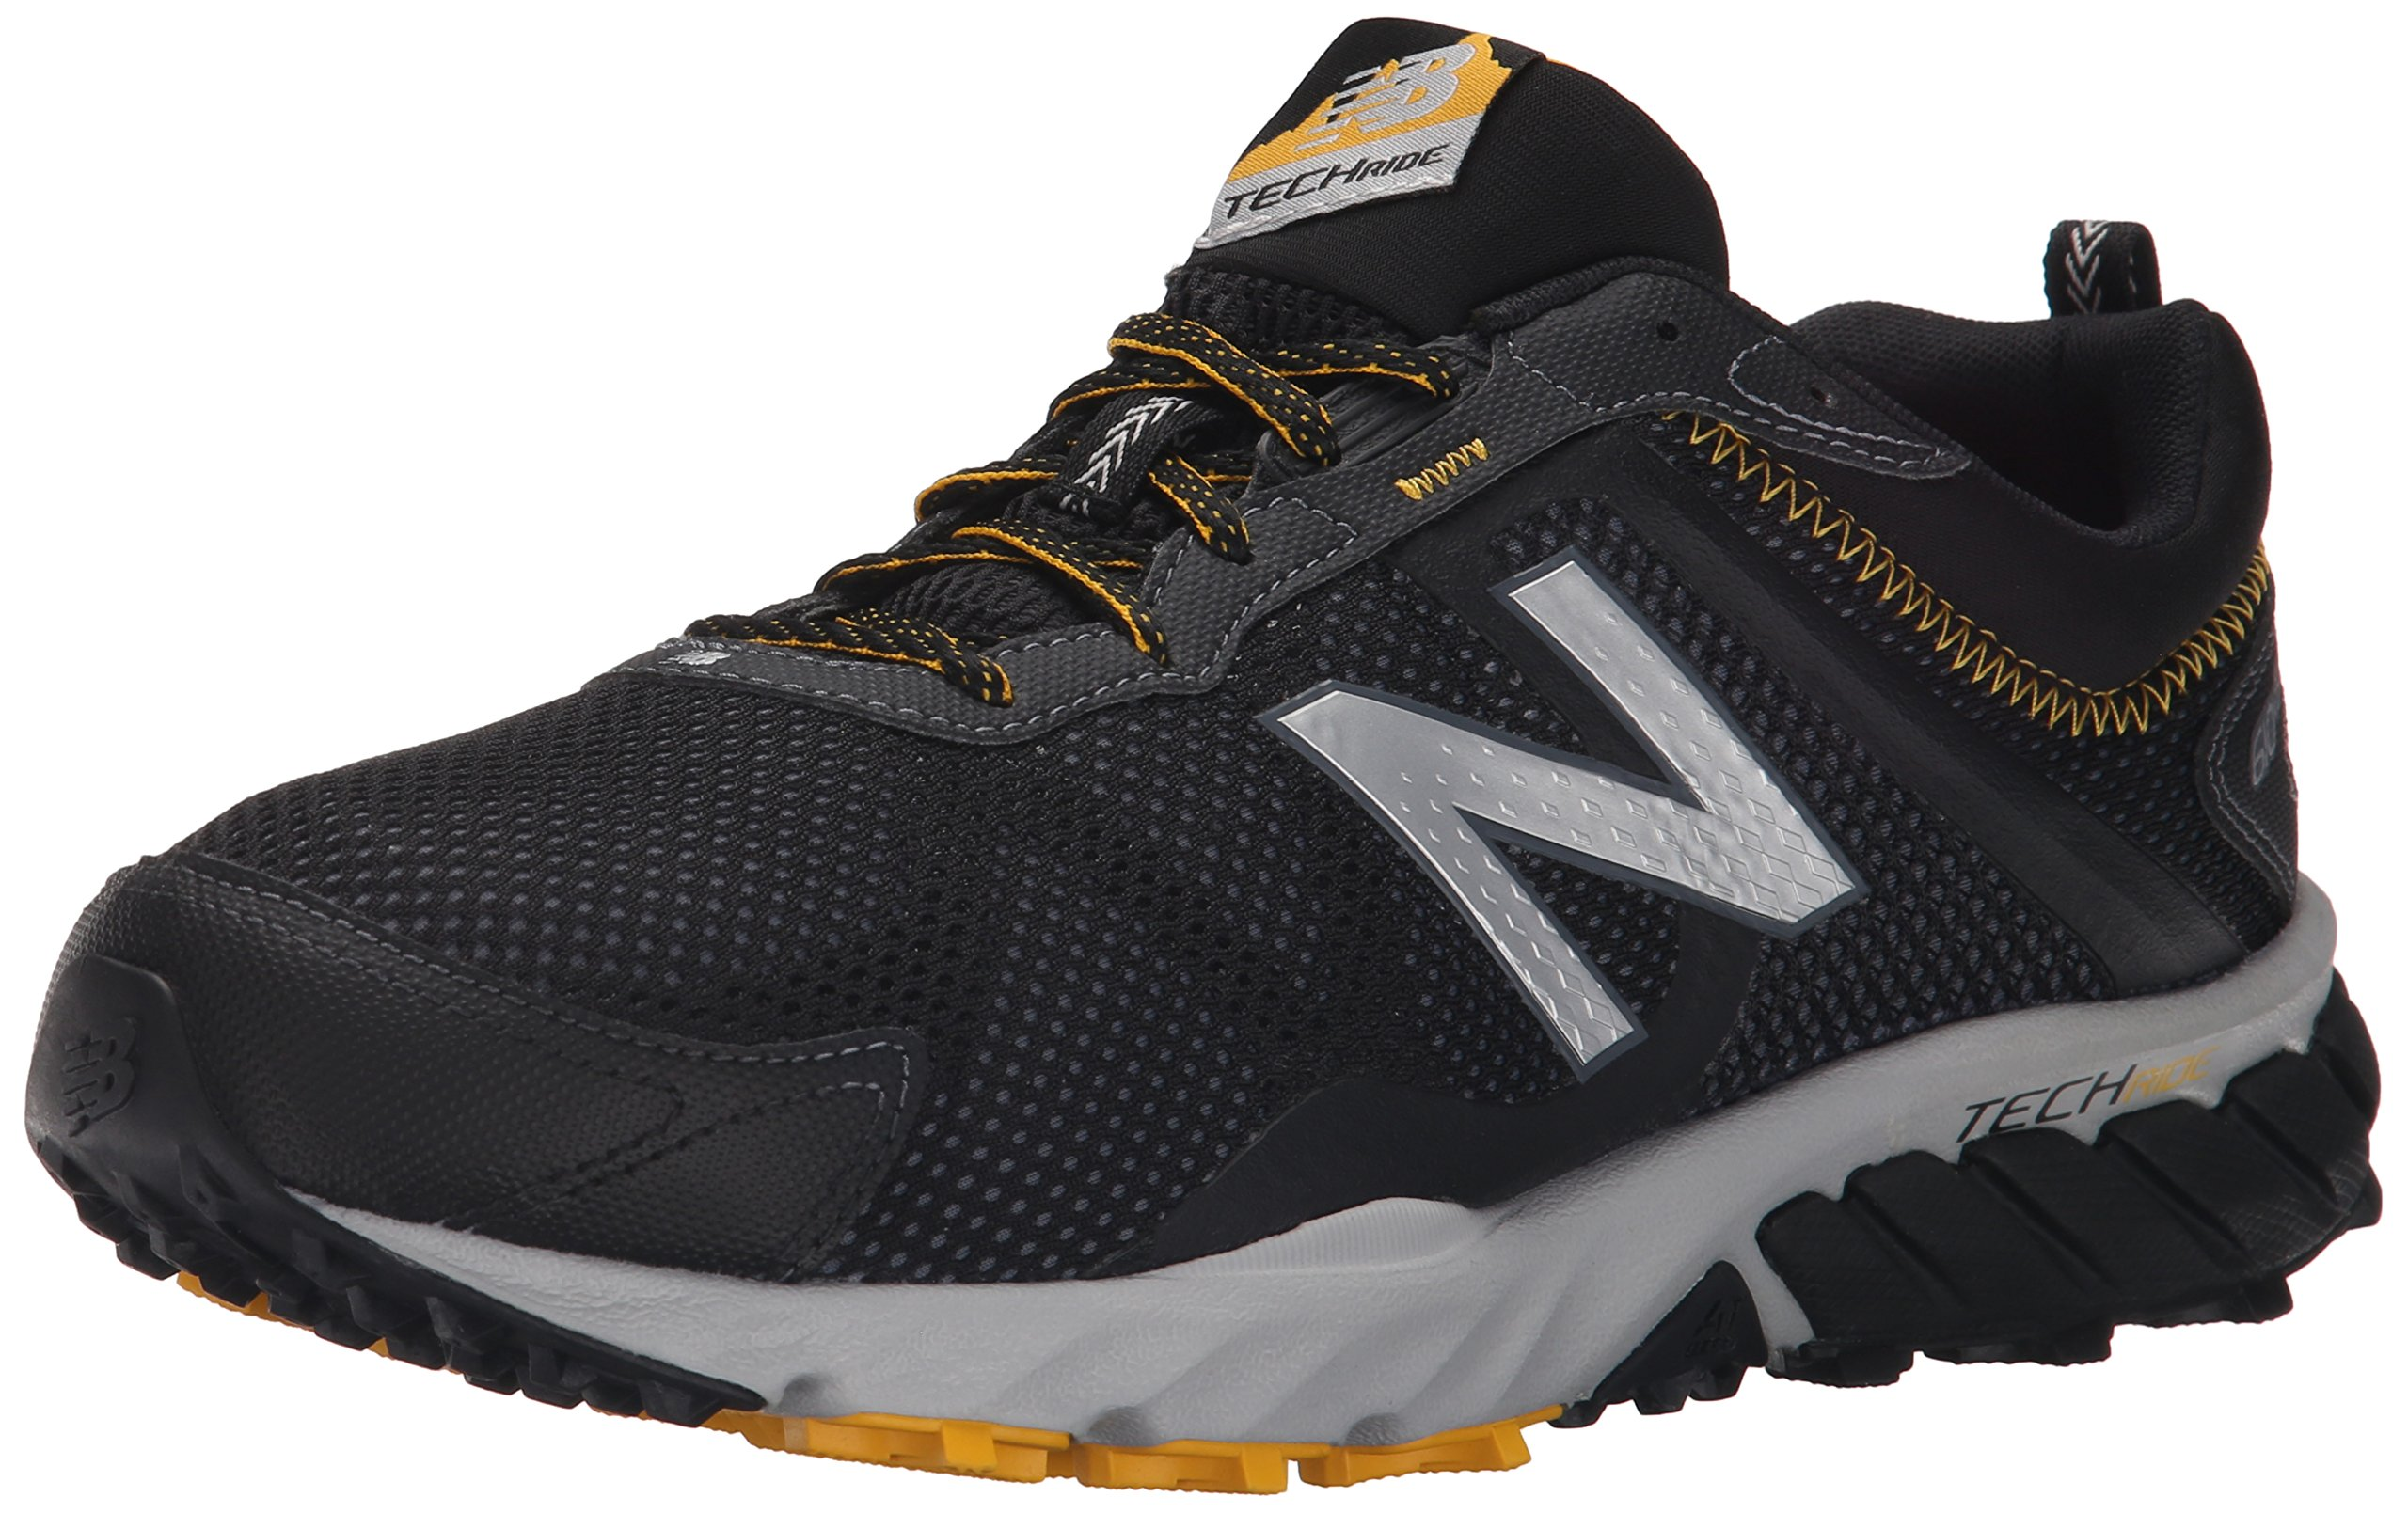 New Balance Men's MT610V5 Trail Shoe, Black/Gold Rush, 10 D US by New Balance